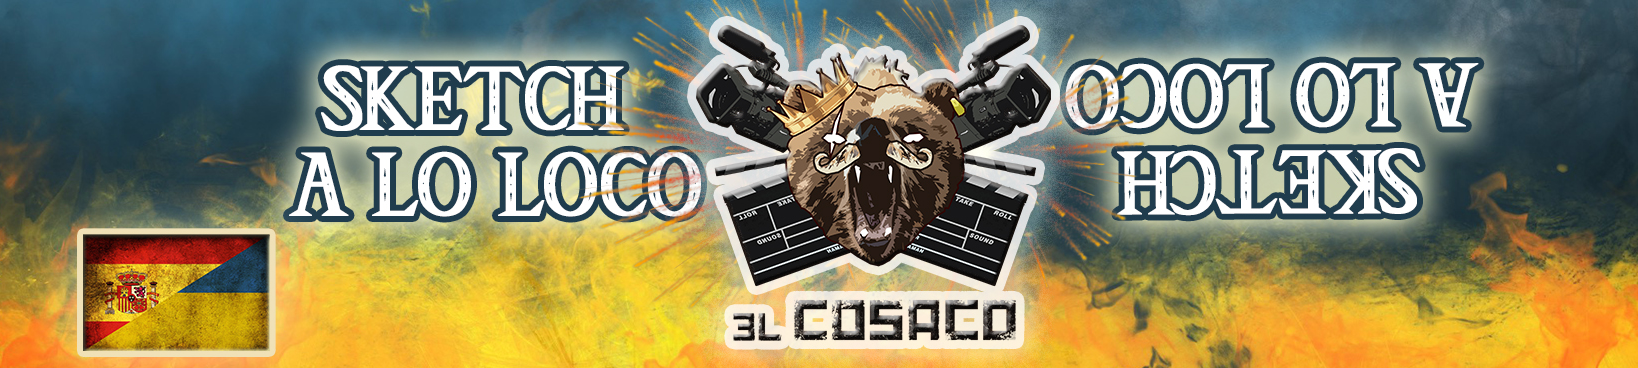 cosaco background